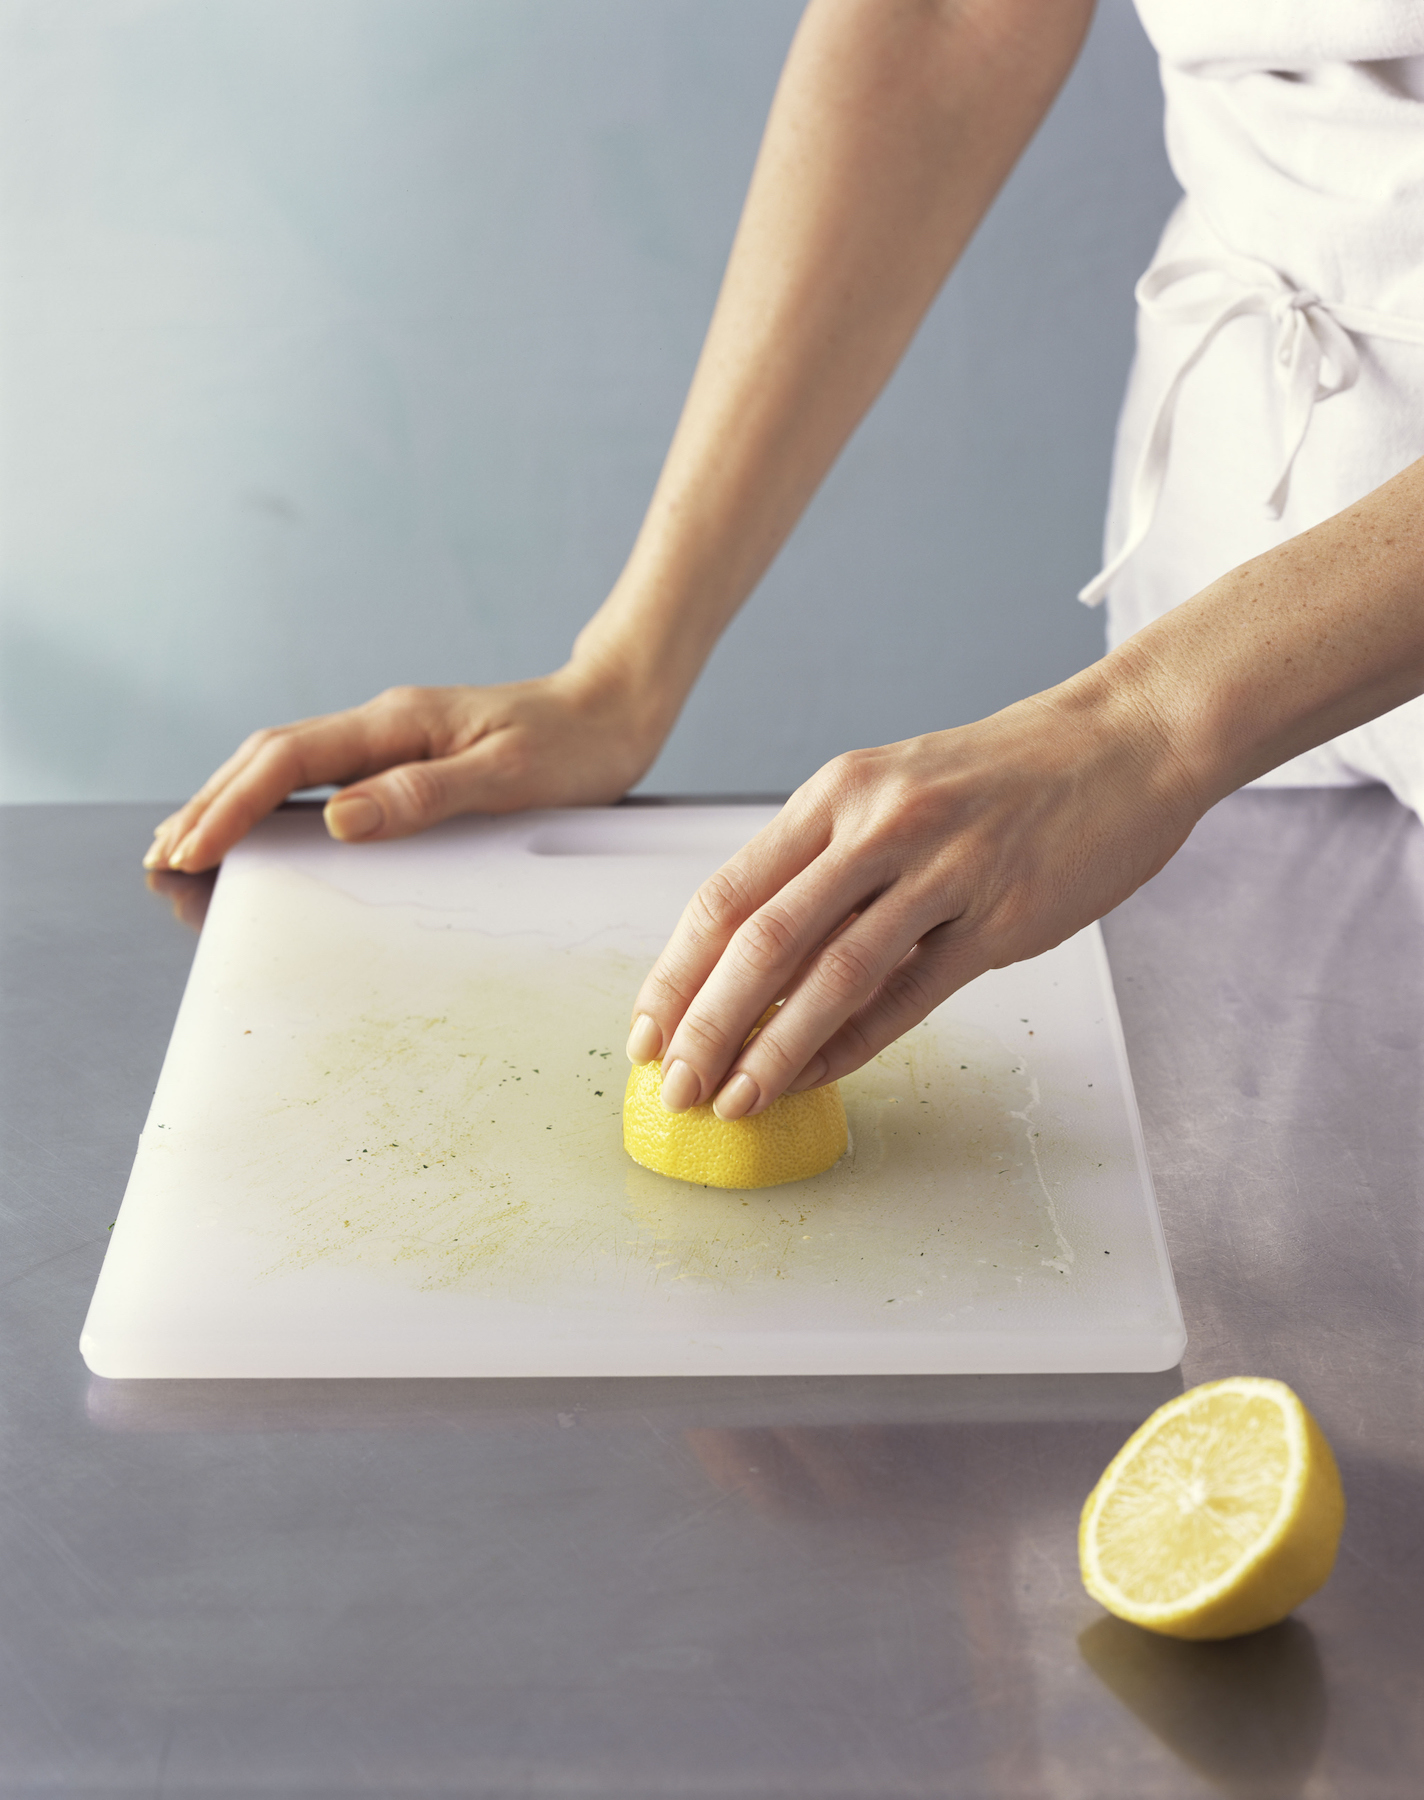 How to clean with lemon juice, cutting board